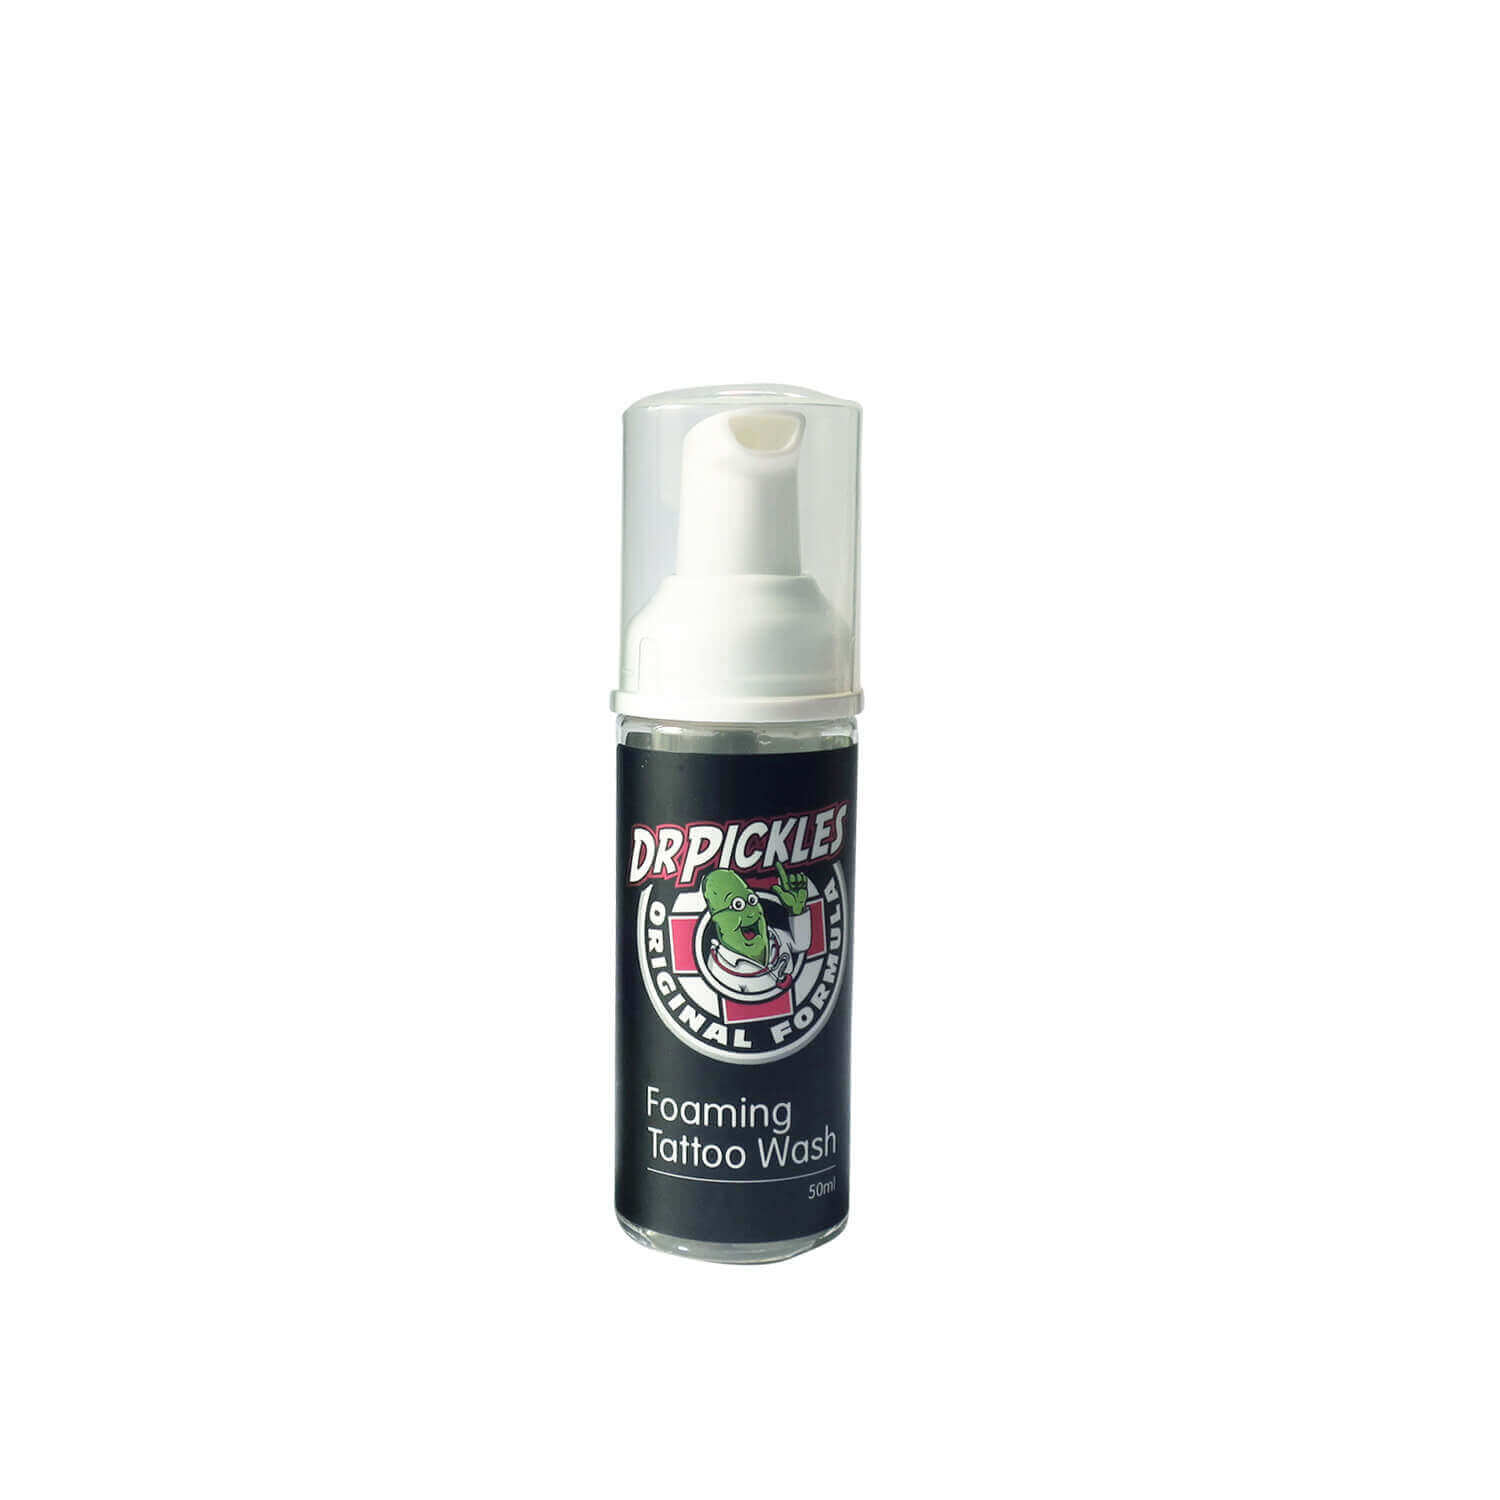 Dr Pickles Tattoo Foaming Tattoo Wash 50ml